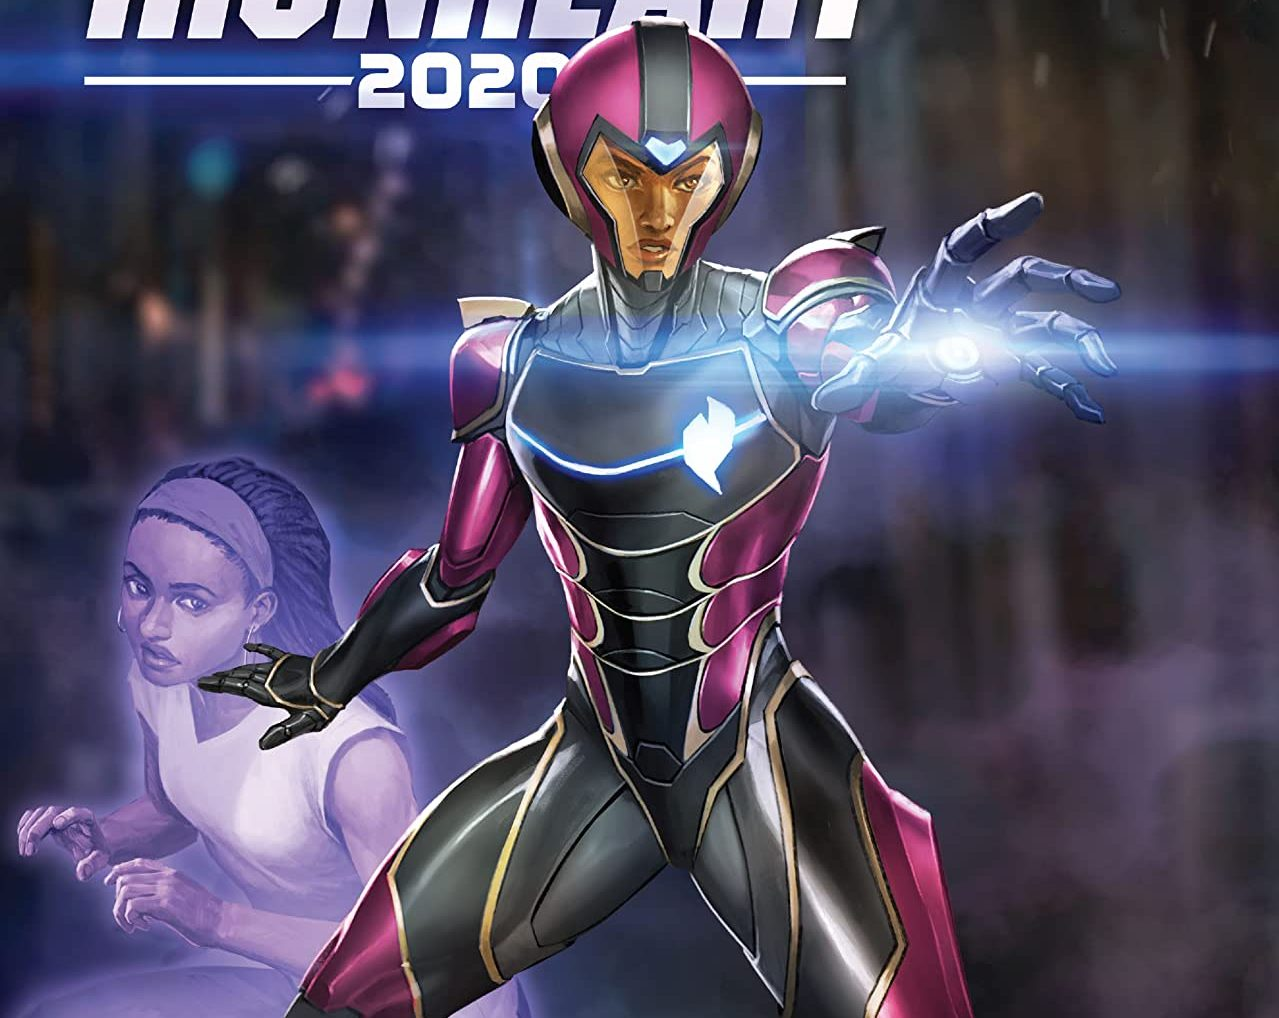 Ironheart 2020 #1 Review